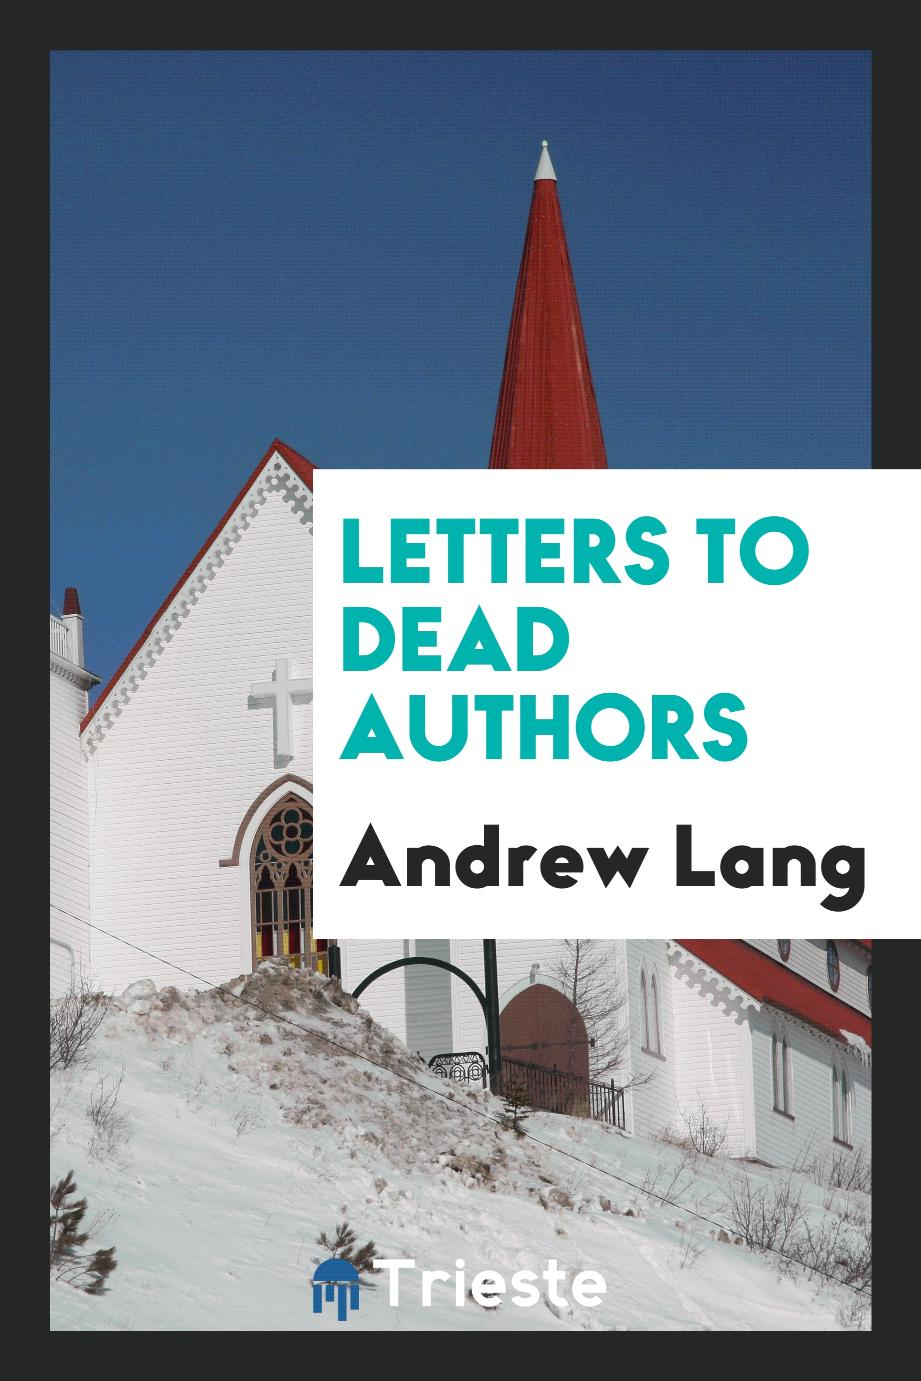 Letters to dead authors